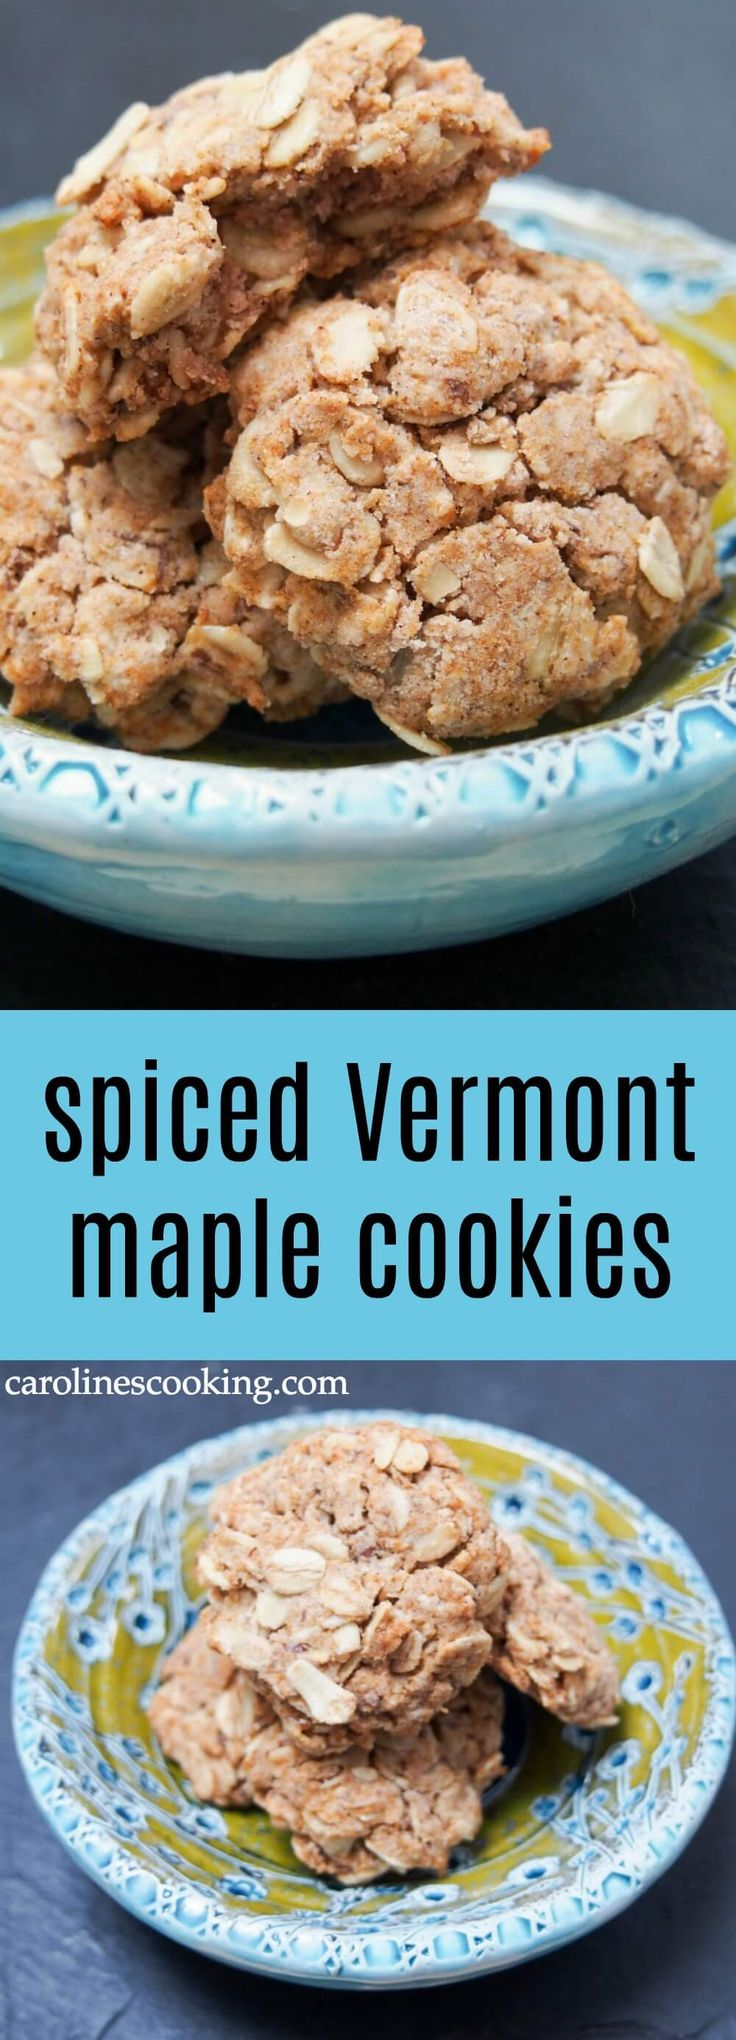 863 best Cookie Recipes images on Pinterest   Baking biscuits ...